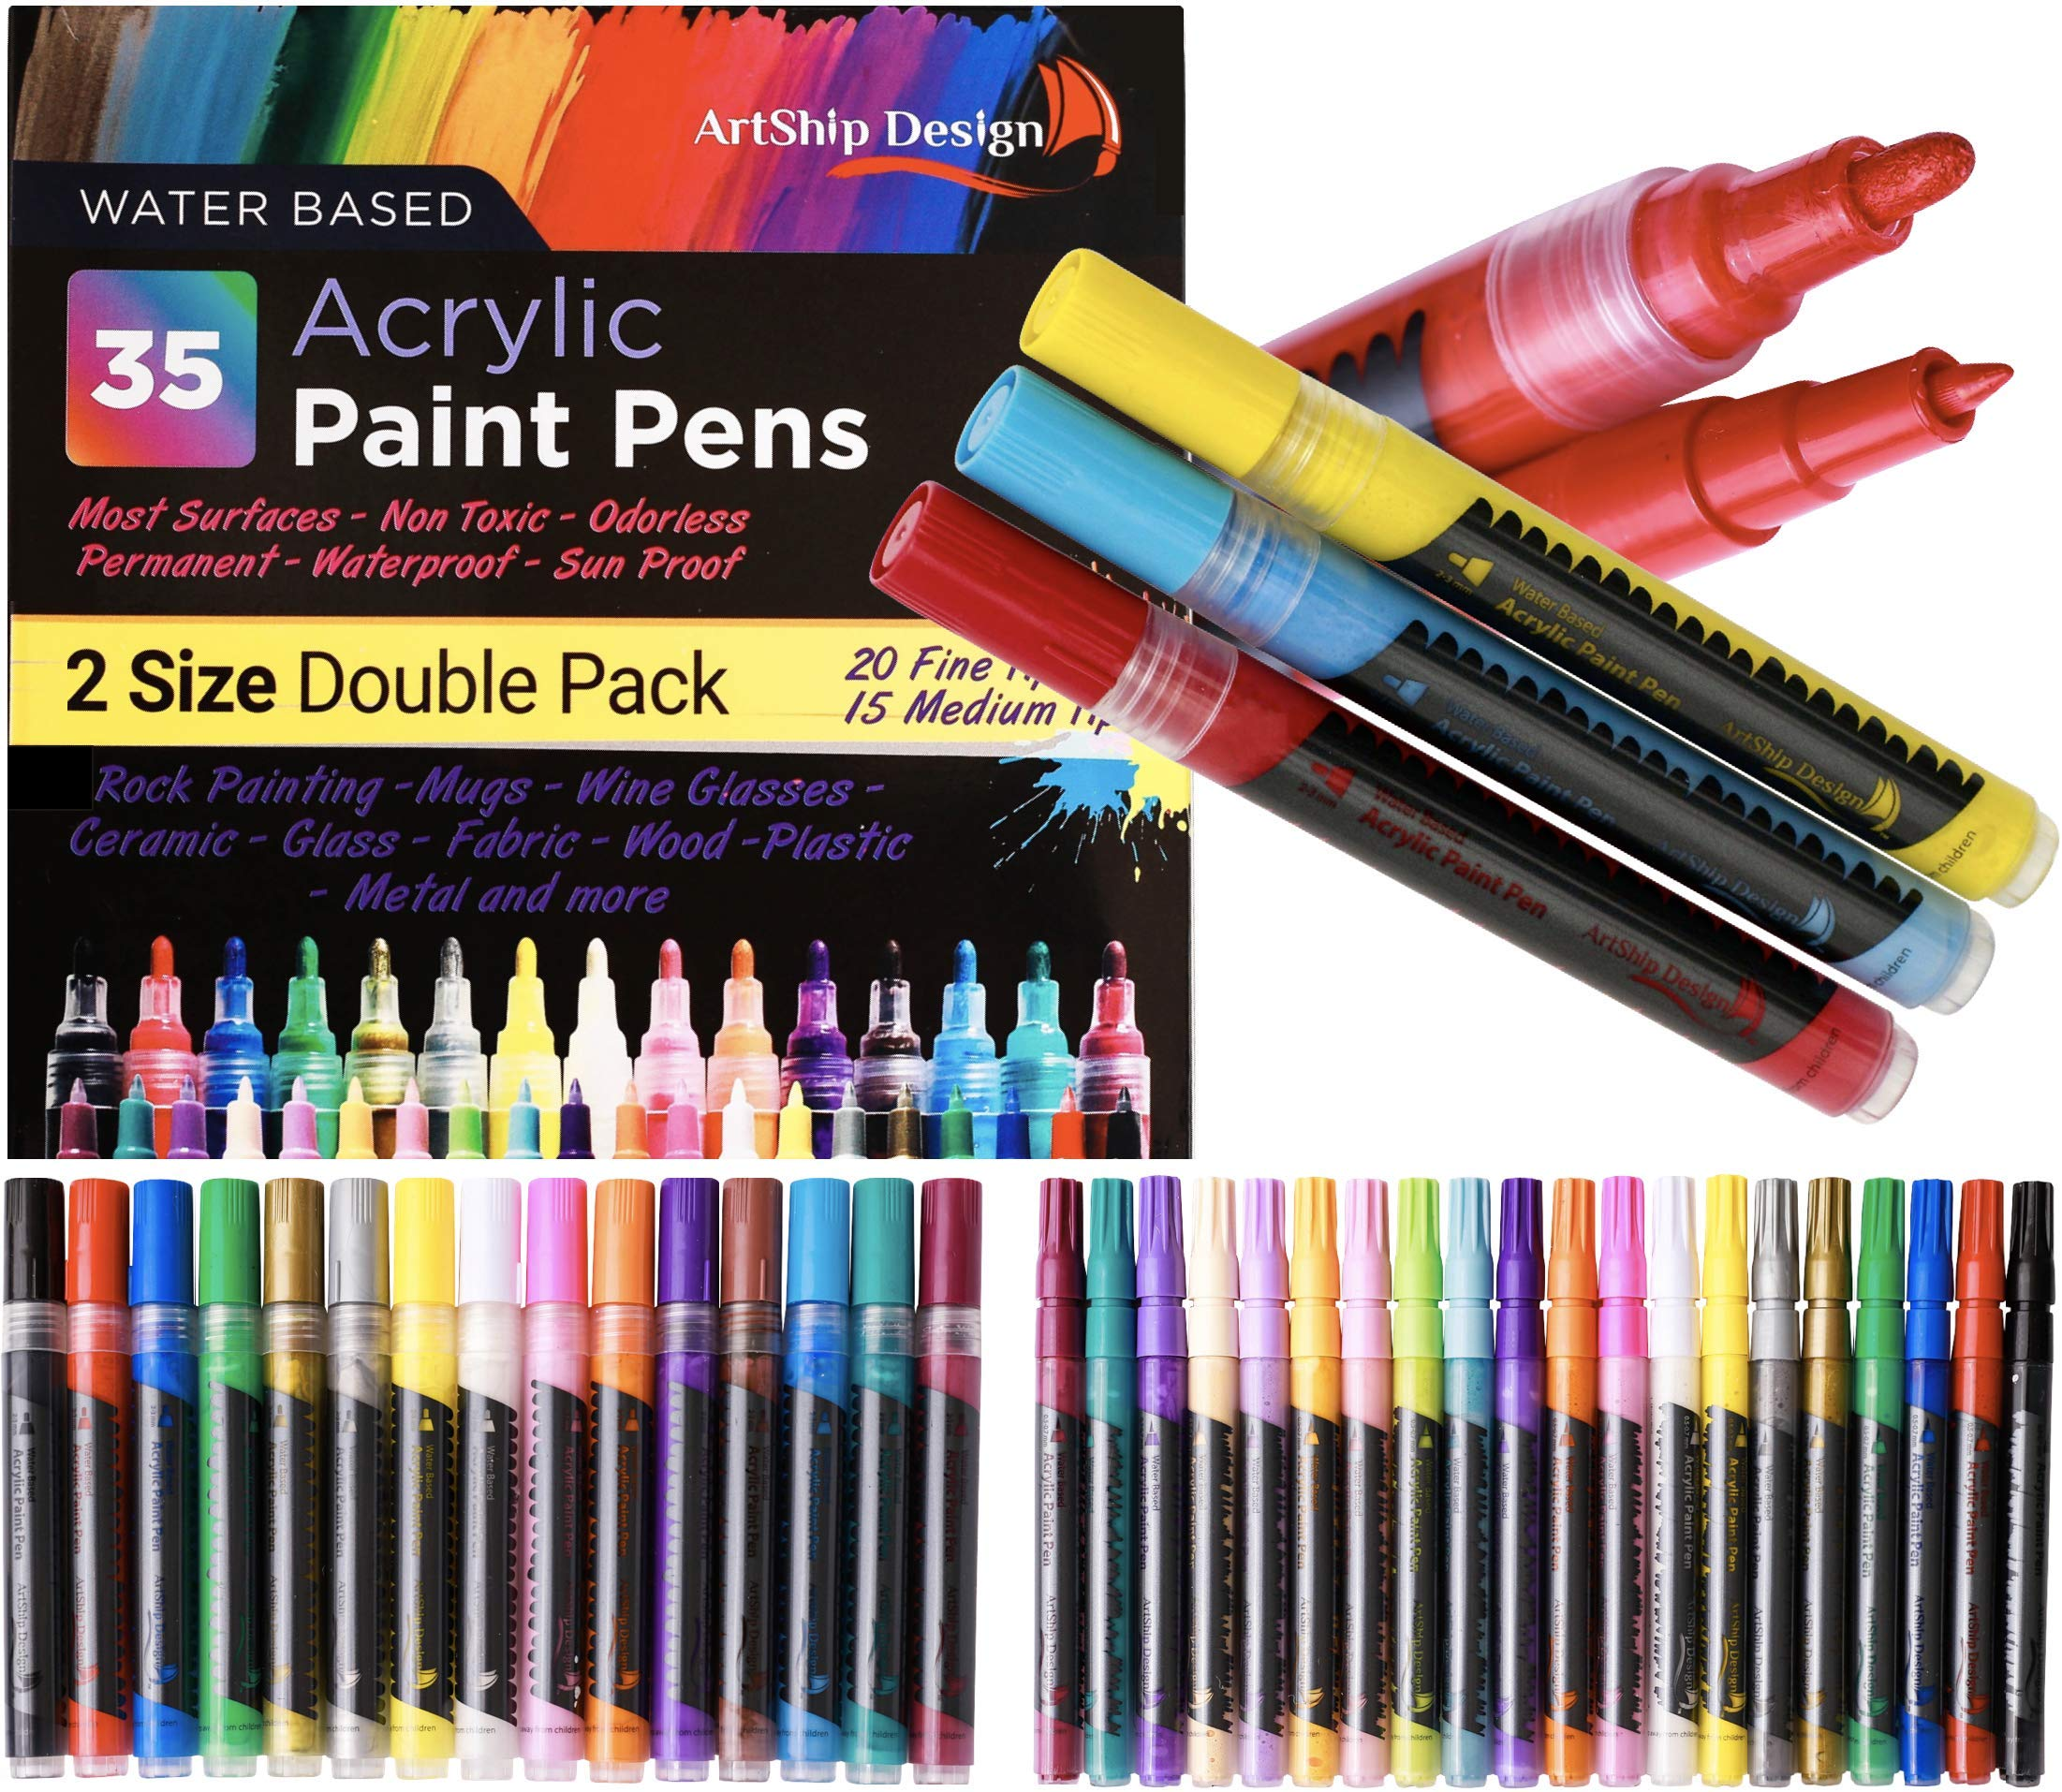 35 Premium Acrylic Paint Pens, Double Pack of Both Extra Fine and Medium Tip, for Rock Painting, Mug, Ceramic, Glass, and Fabric Painting, Water Based Non-Toxic and No Odor by ArtShip Design